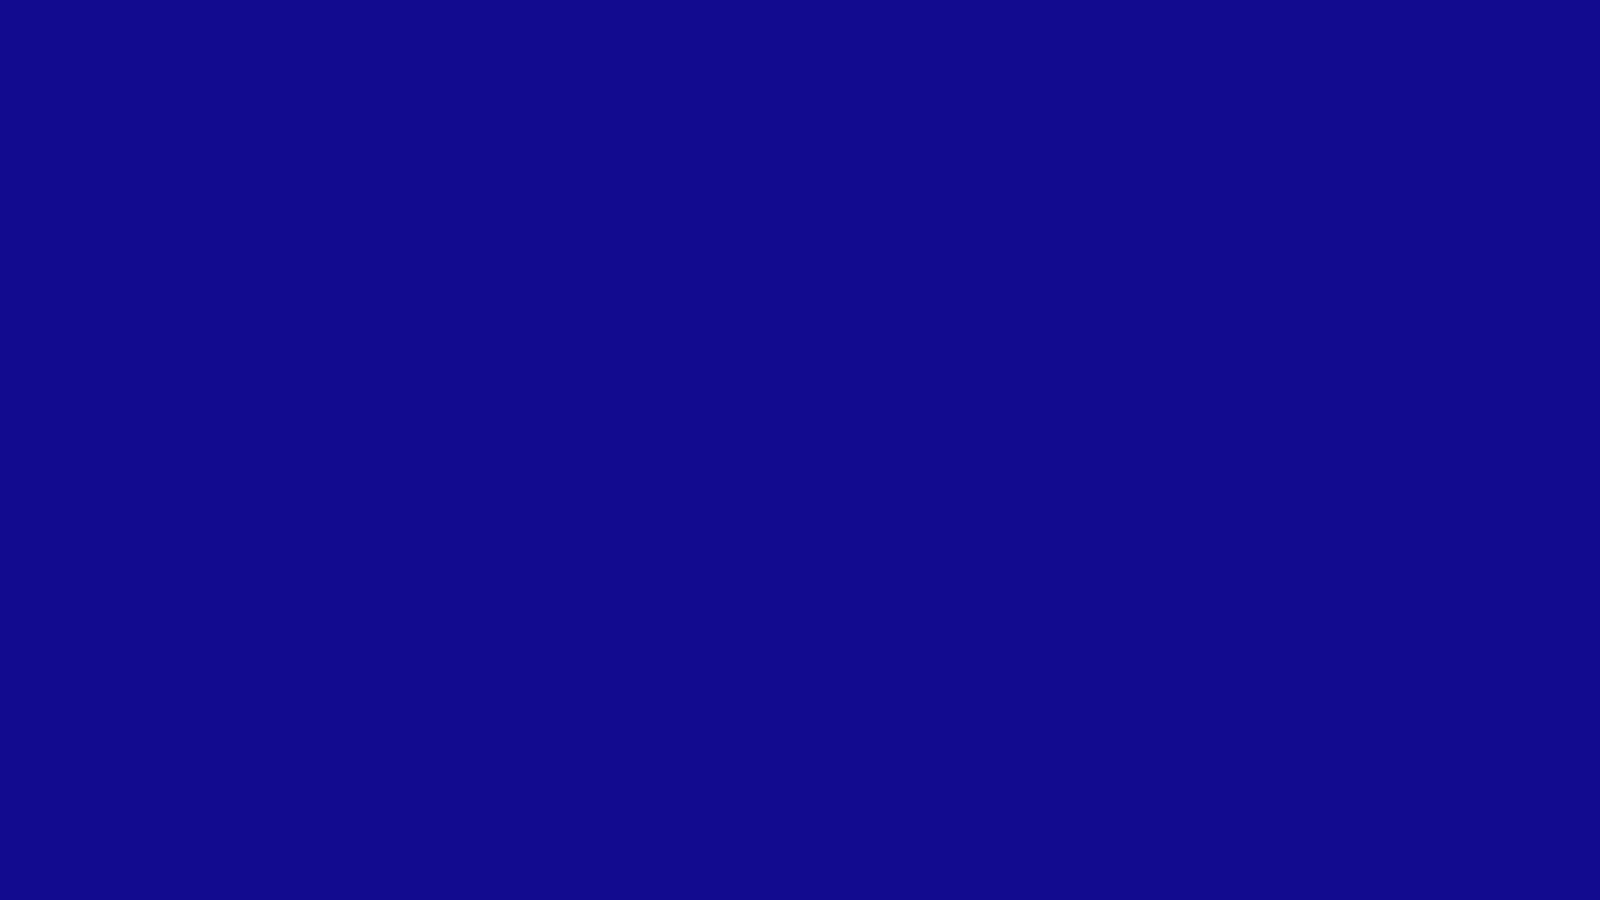 1600x900 Ultramarine Solid Color Background 1600x900